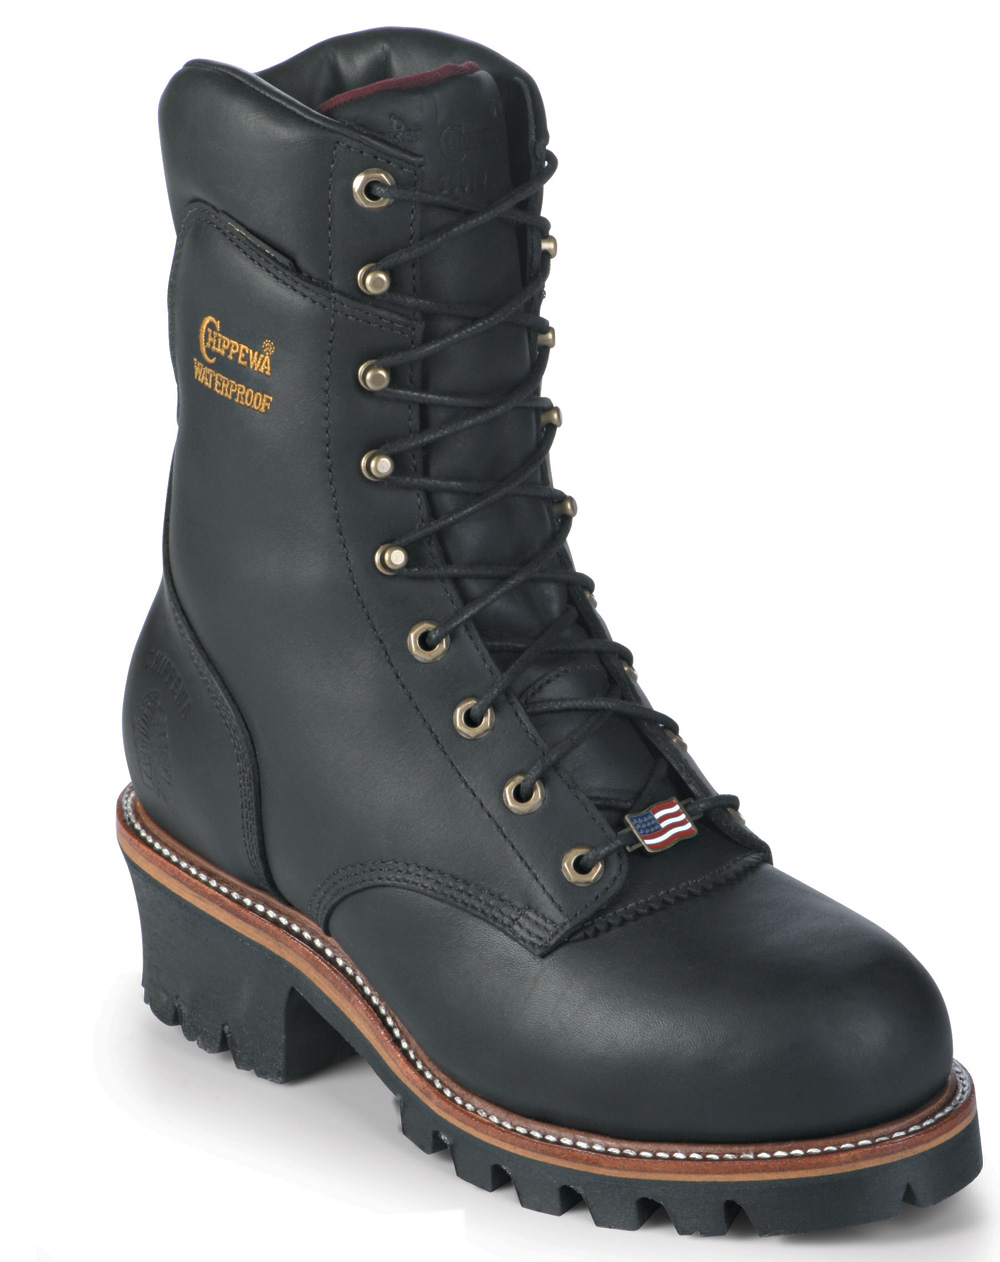 Chippewa Men's Waterproof Super Logger Work Boot USA Made Black 25411 (E) at Sears.com